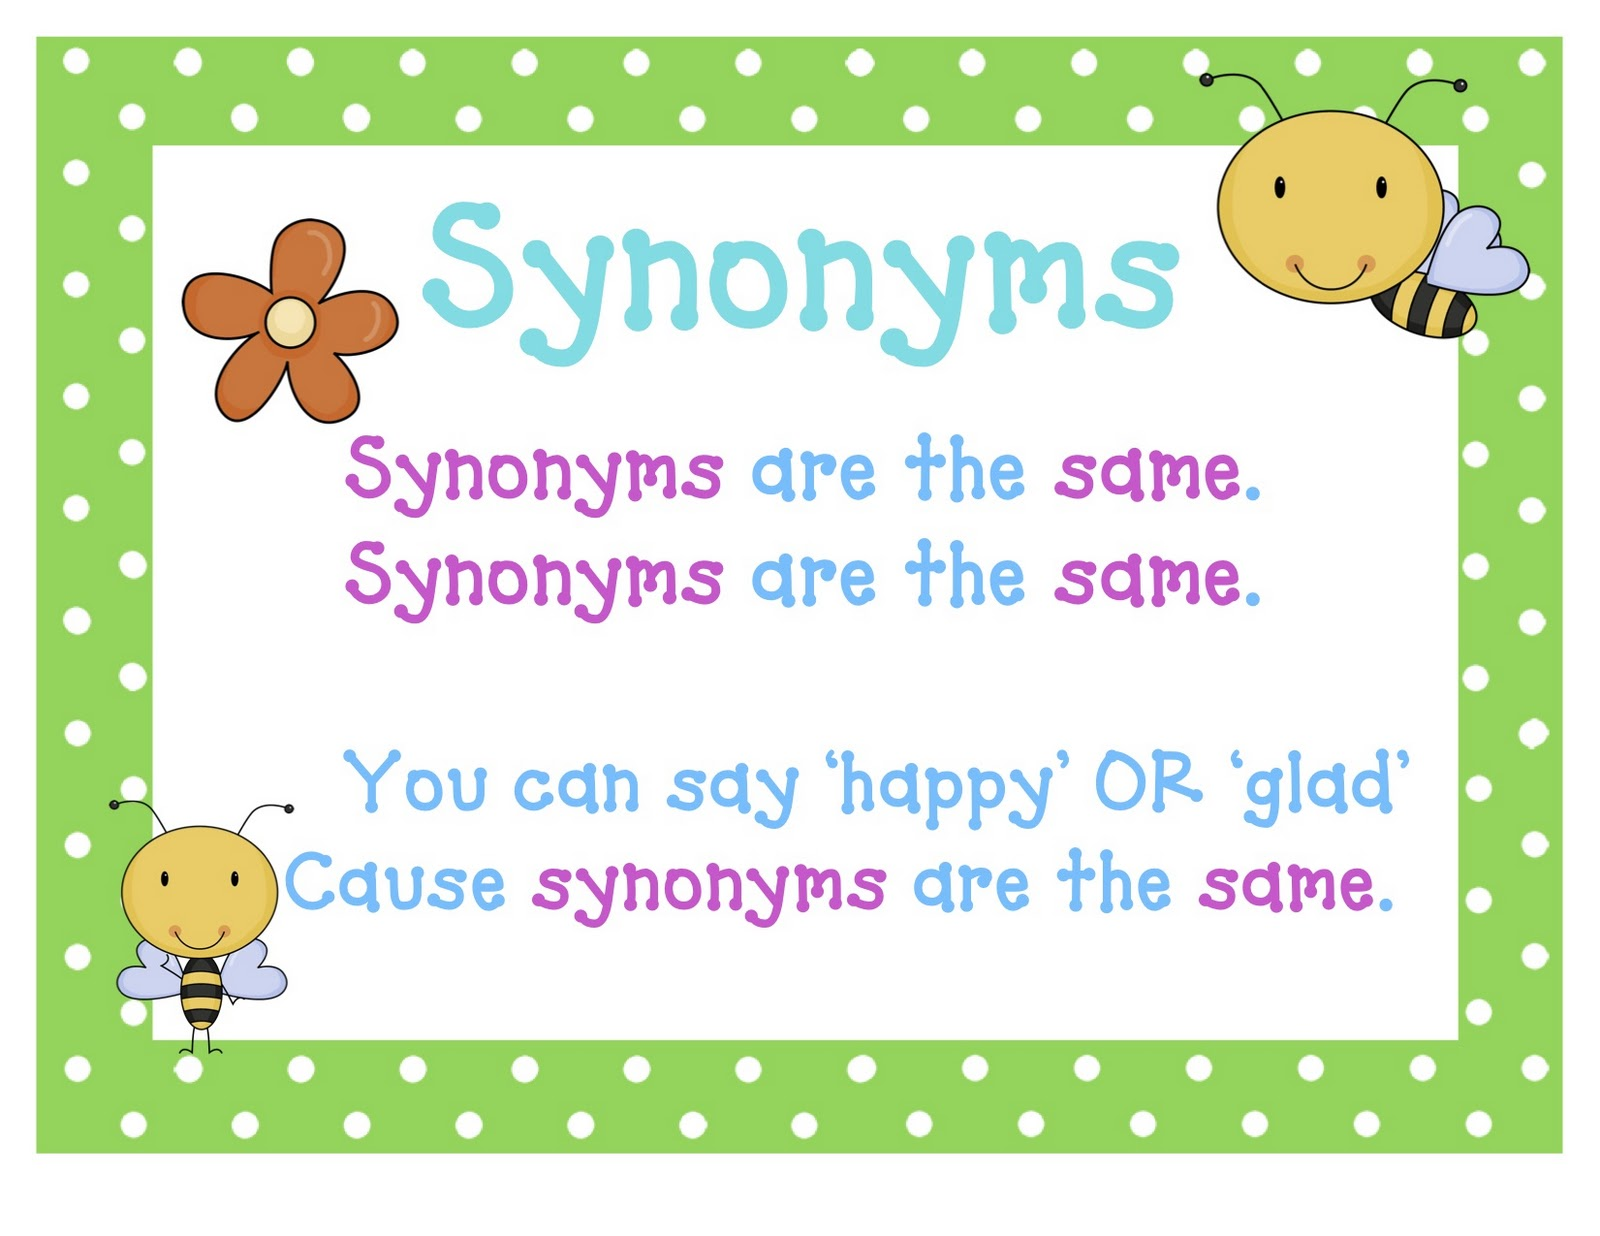 Worksheet Synonyms And Antonyms synonyms and antonyms a little thesaurus lessons tes teach buzzing with ms b december 2011